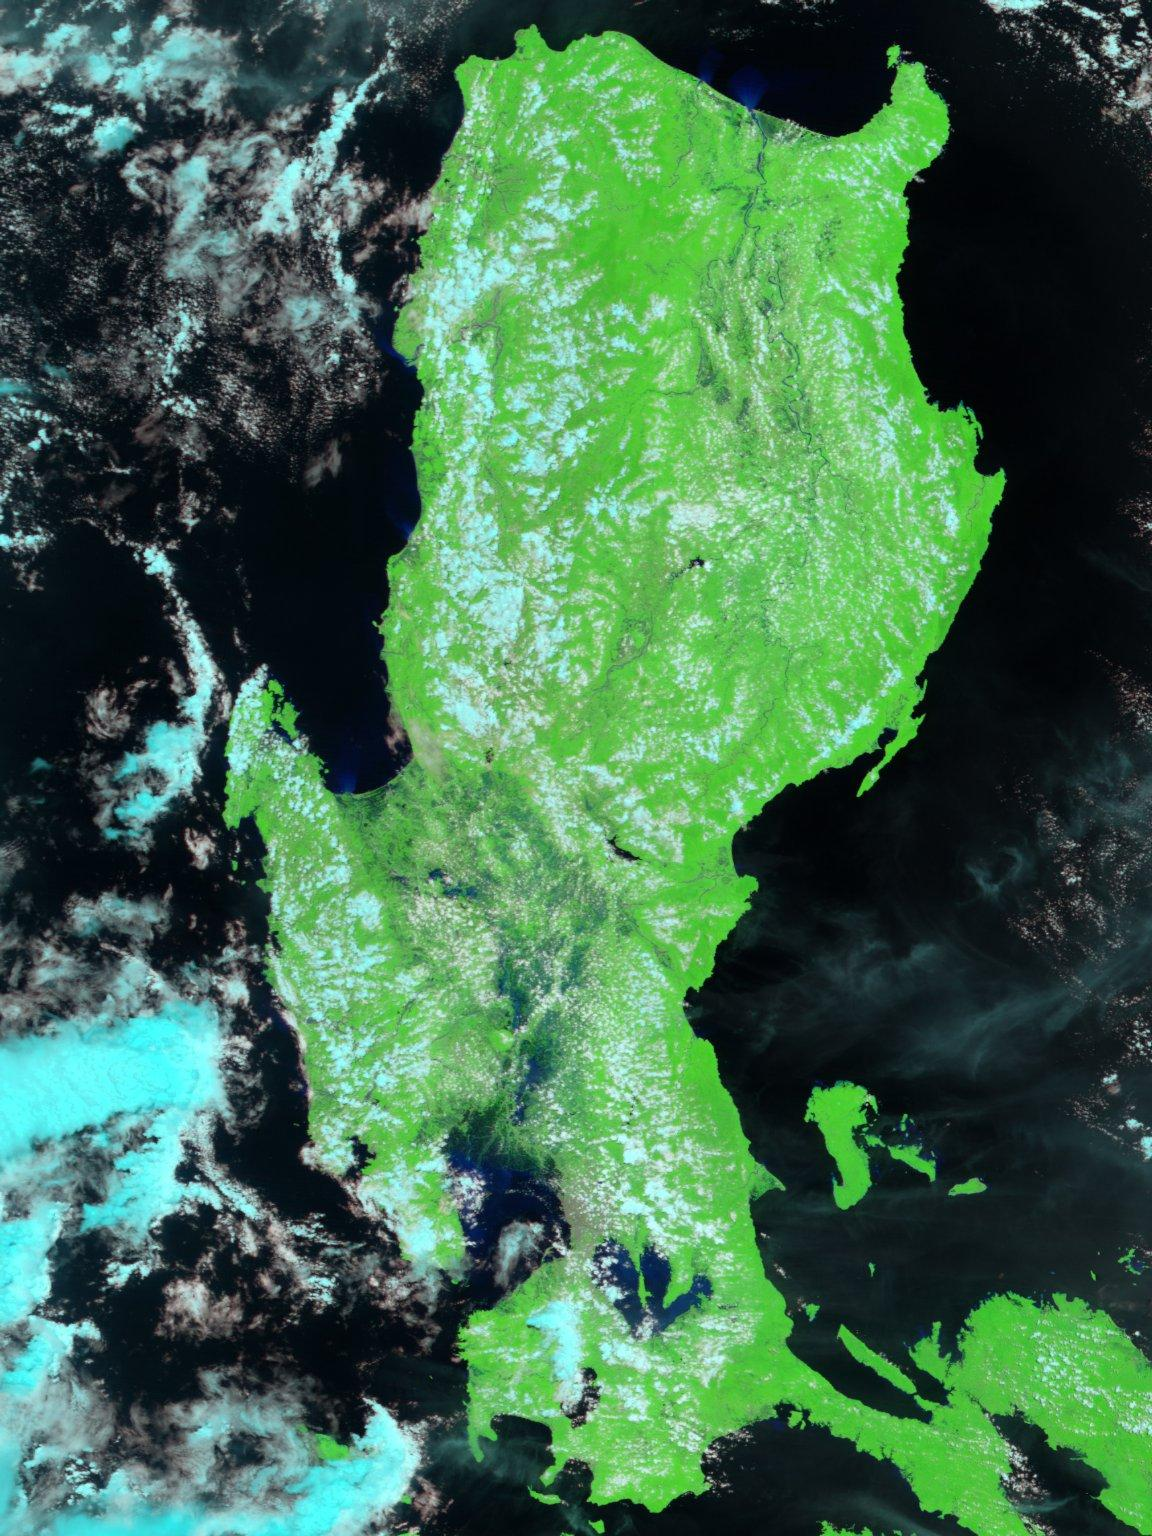 Flooding in Luzon, Philippines